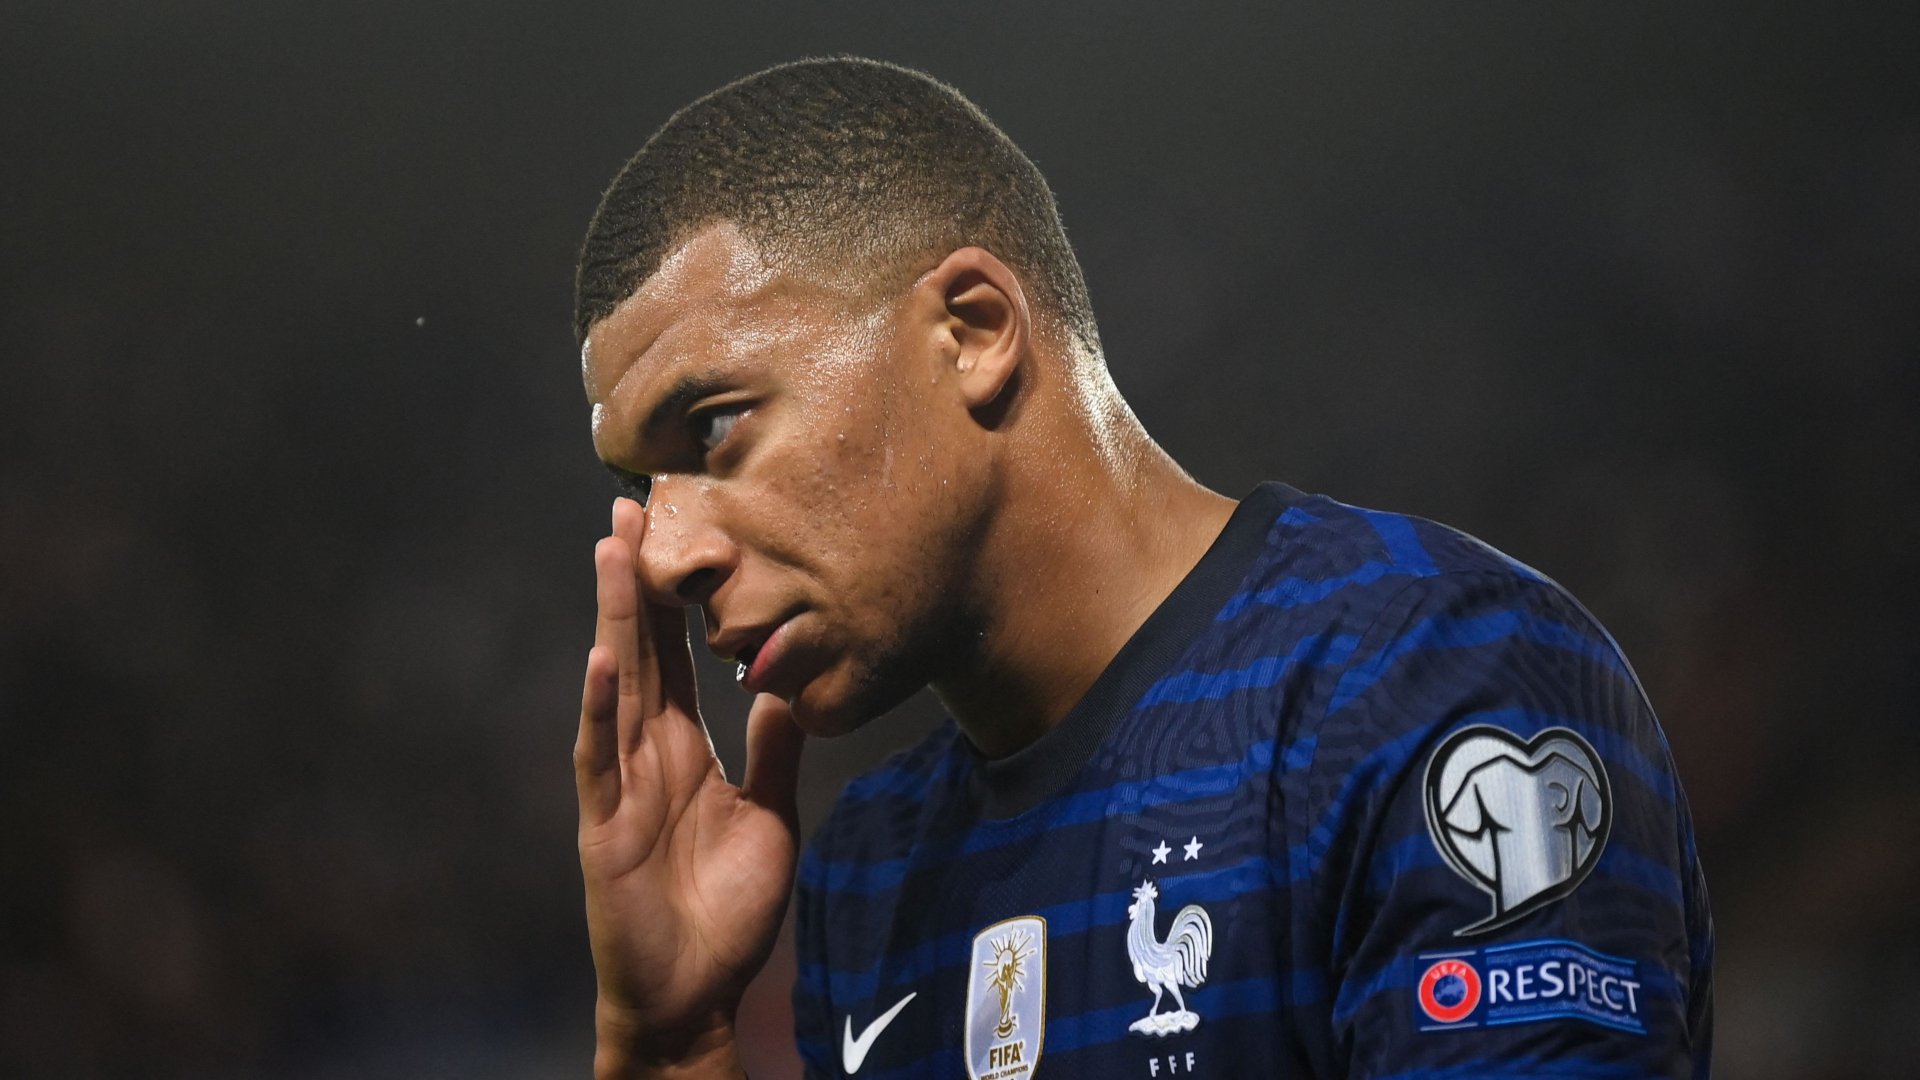 Mbappe claims French national team made him feel like a 'problem' after Euro 2020 penalty miss